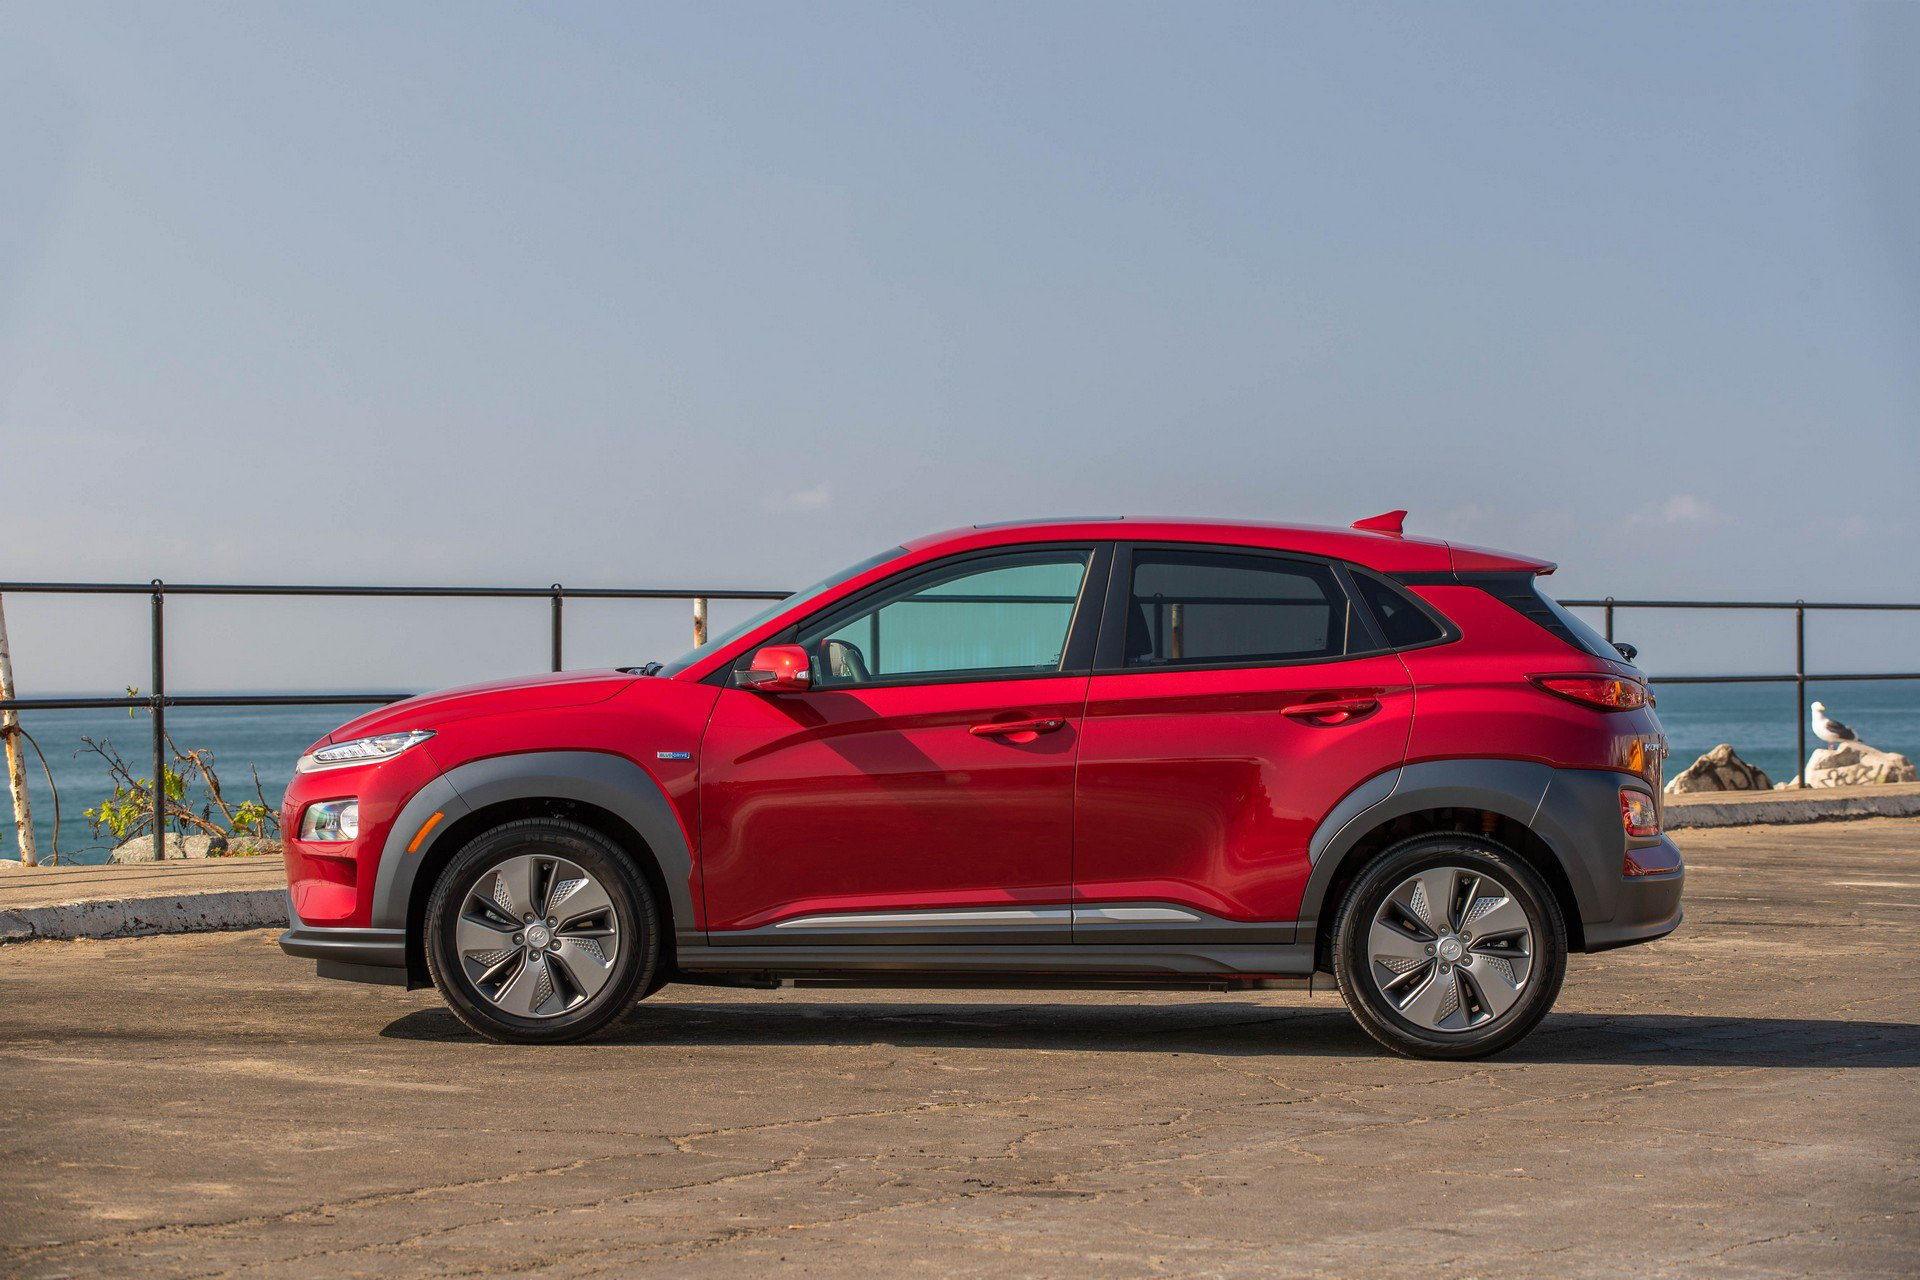 2019 Hyundai Kona Electric Gets EPA-rated 258 Miles Of Range - autoevolution